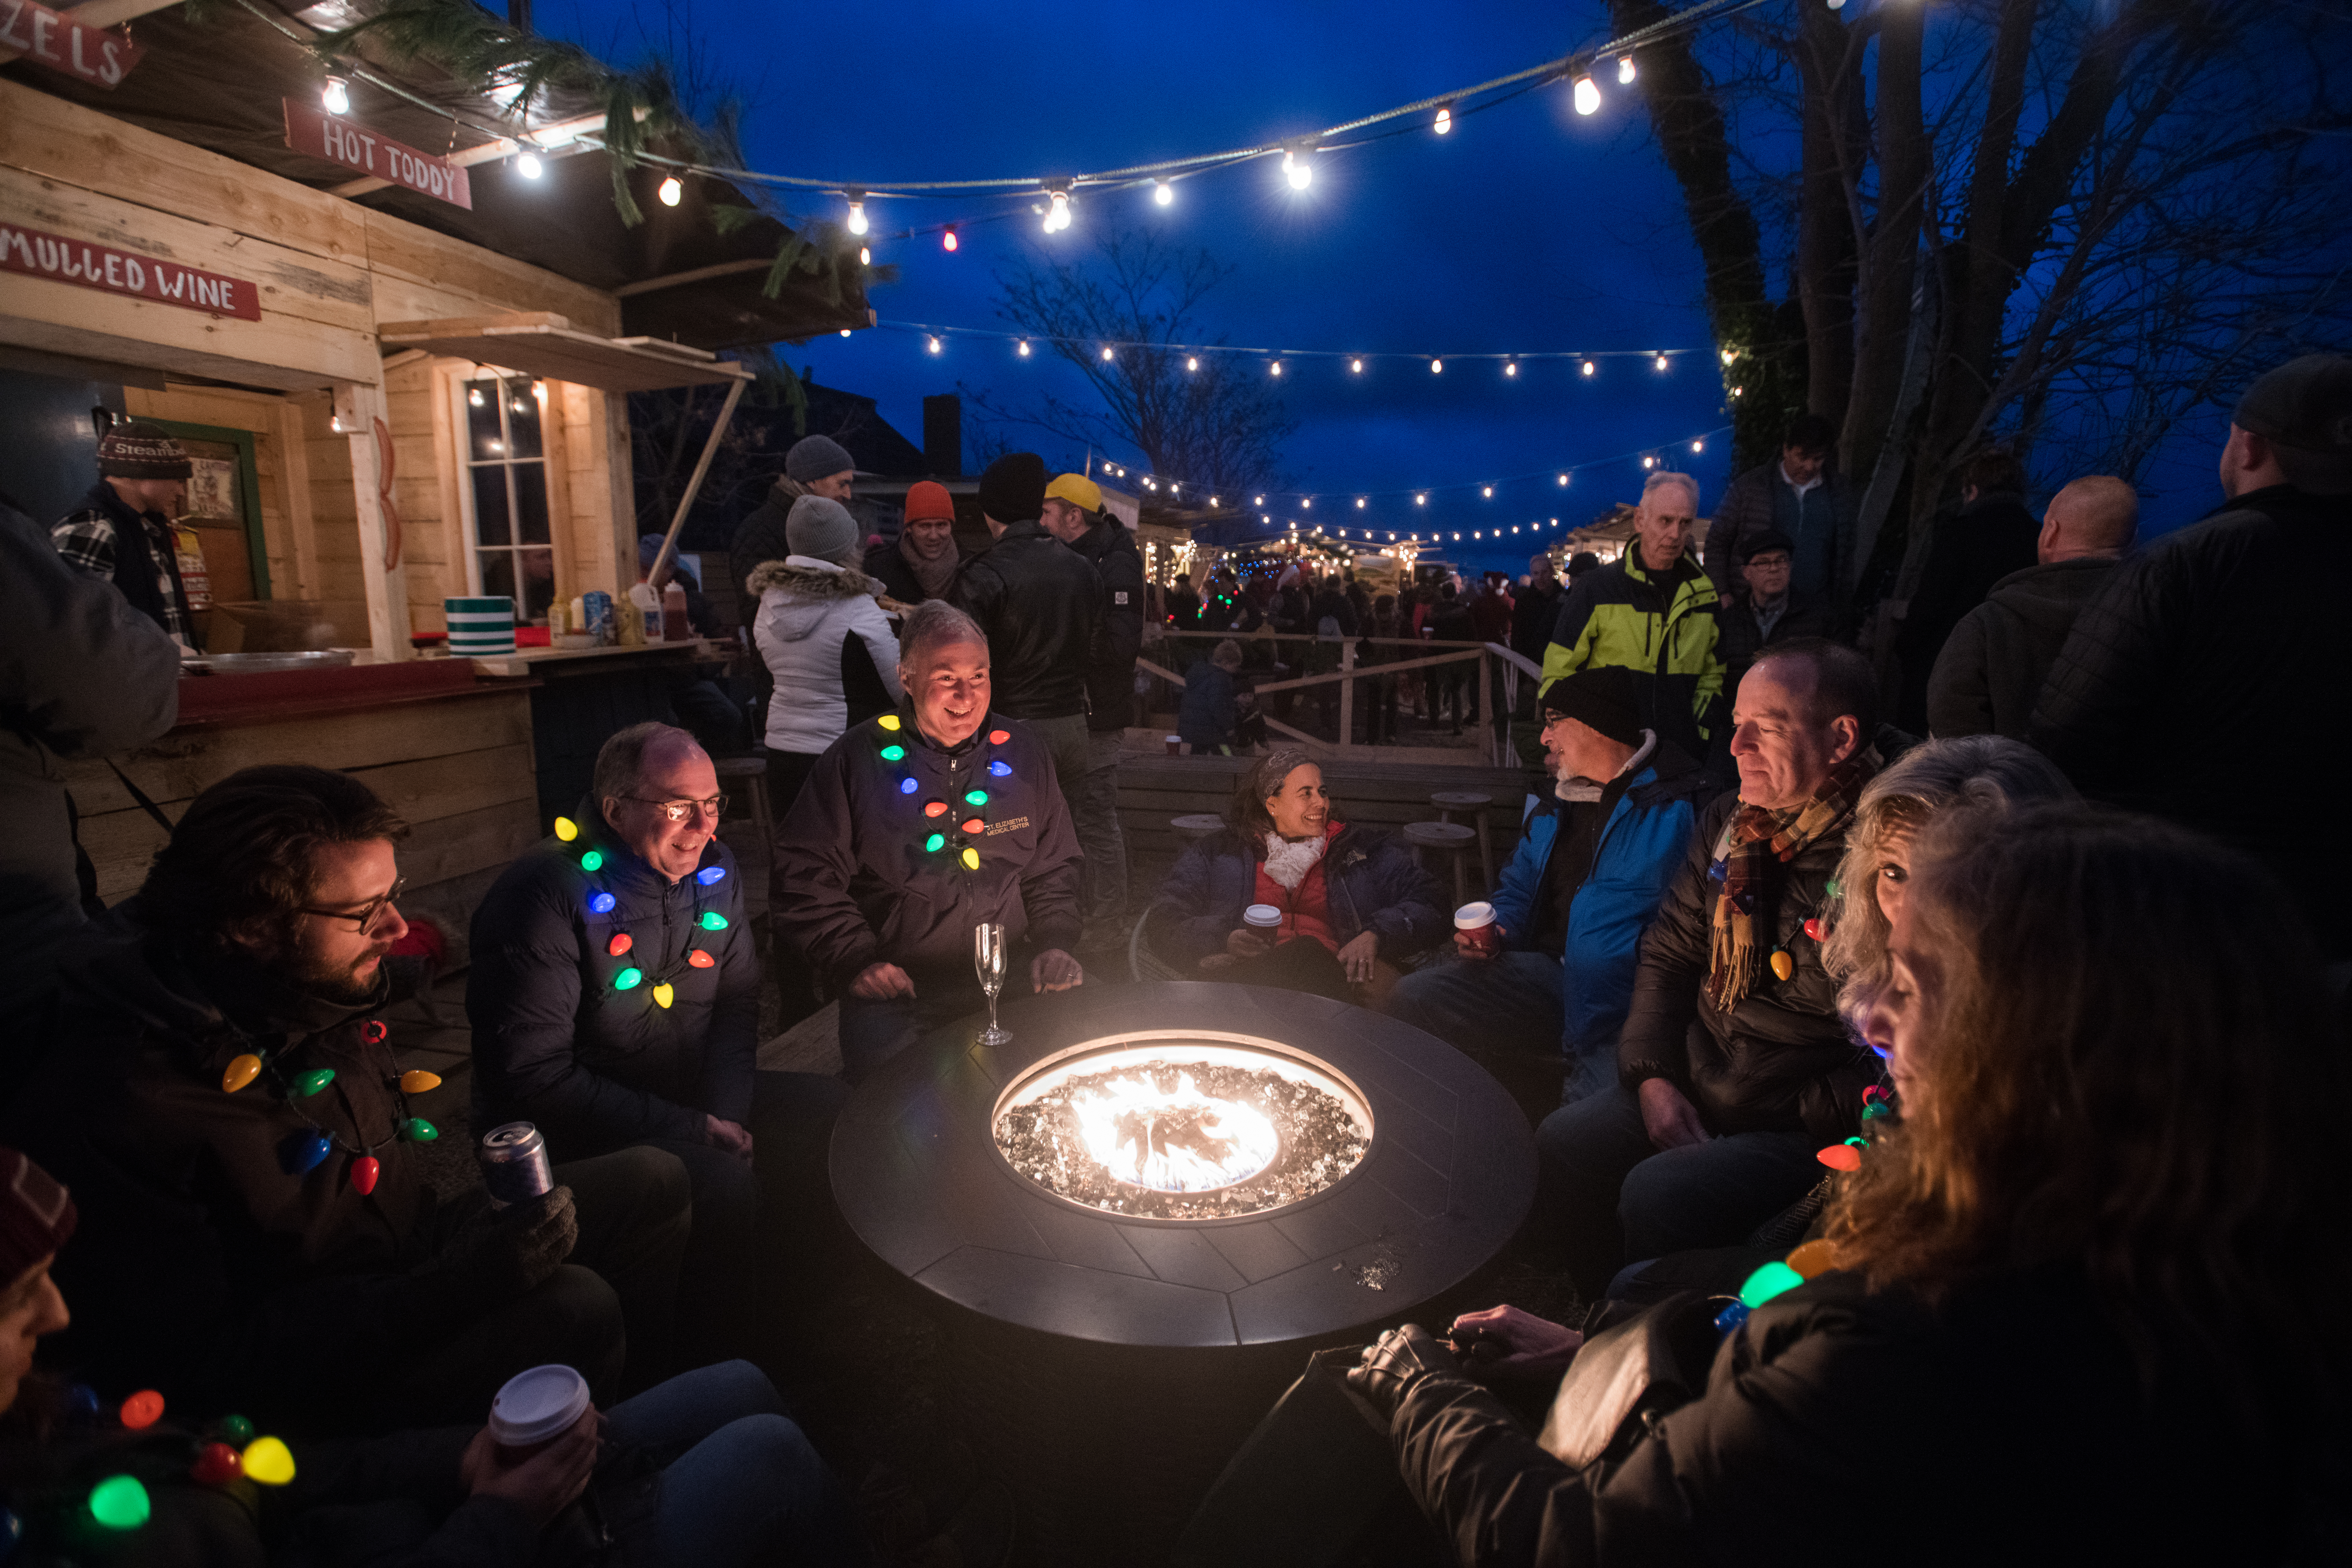 A group of people surround a fire pit at night, each wearing a light-up holiday lights necklace. There are string lights above and a holiday market in the background. A wooden chalet advertises hot toddies and more.